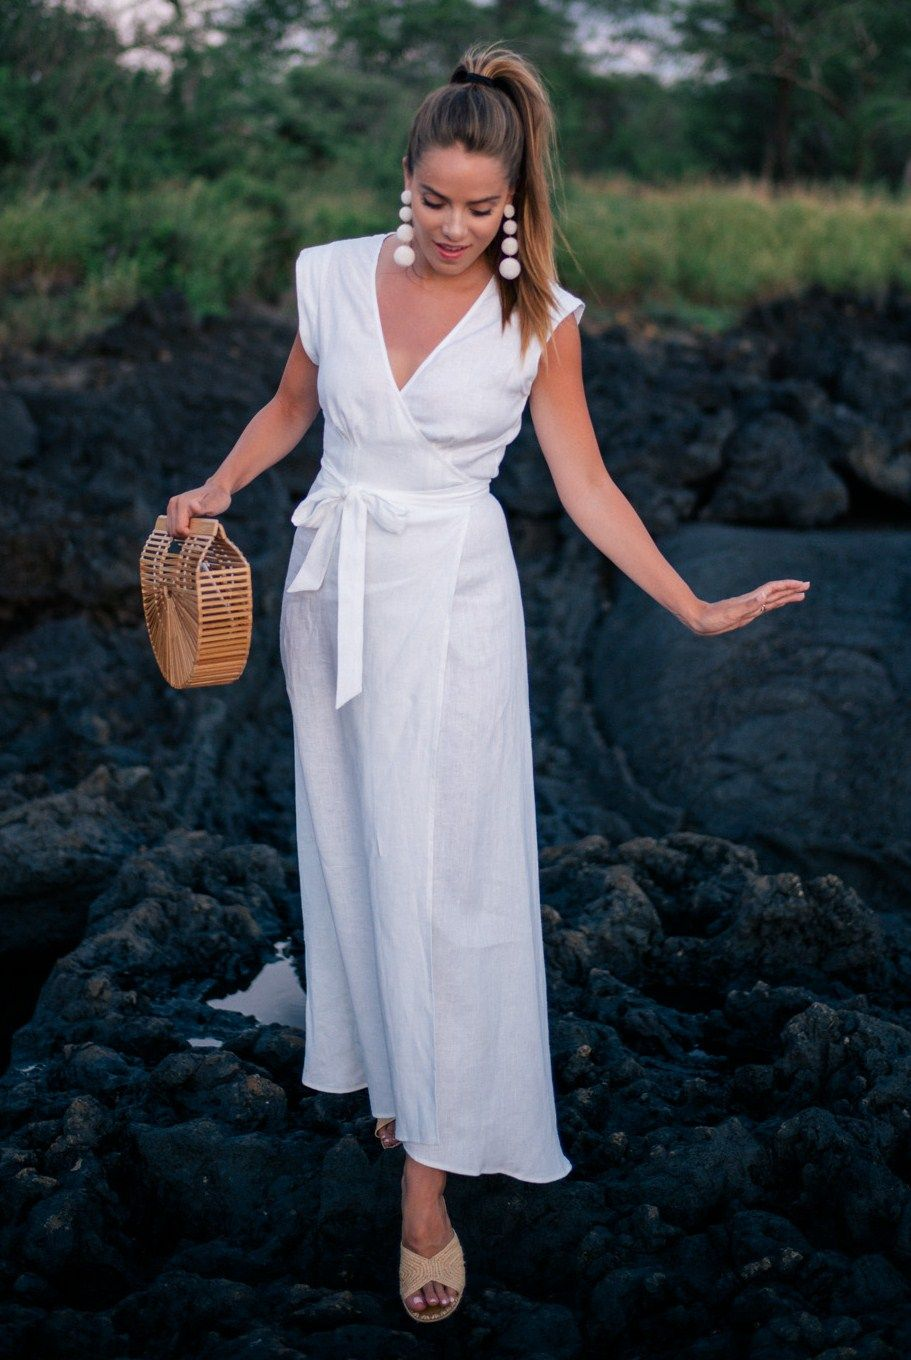 f29d10f13c 9.16 white linen maxi dress (Reformation  parisa  dress in white linen +  Club Monaco  carrie forbes  salon sandals in natural + Gaia s  ark  handbag  + ...